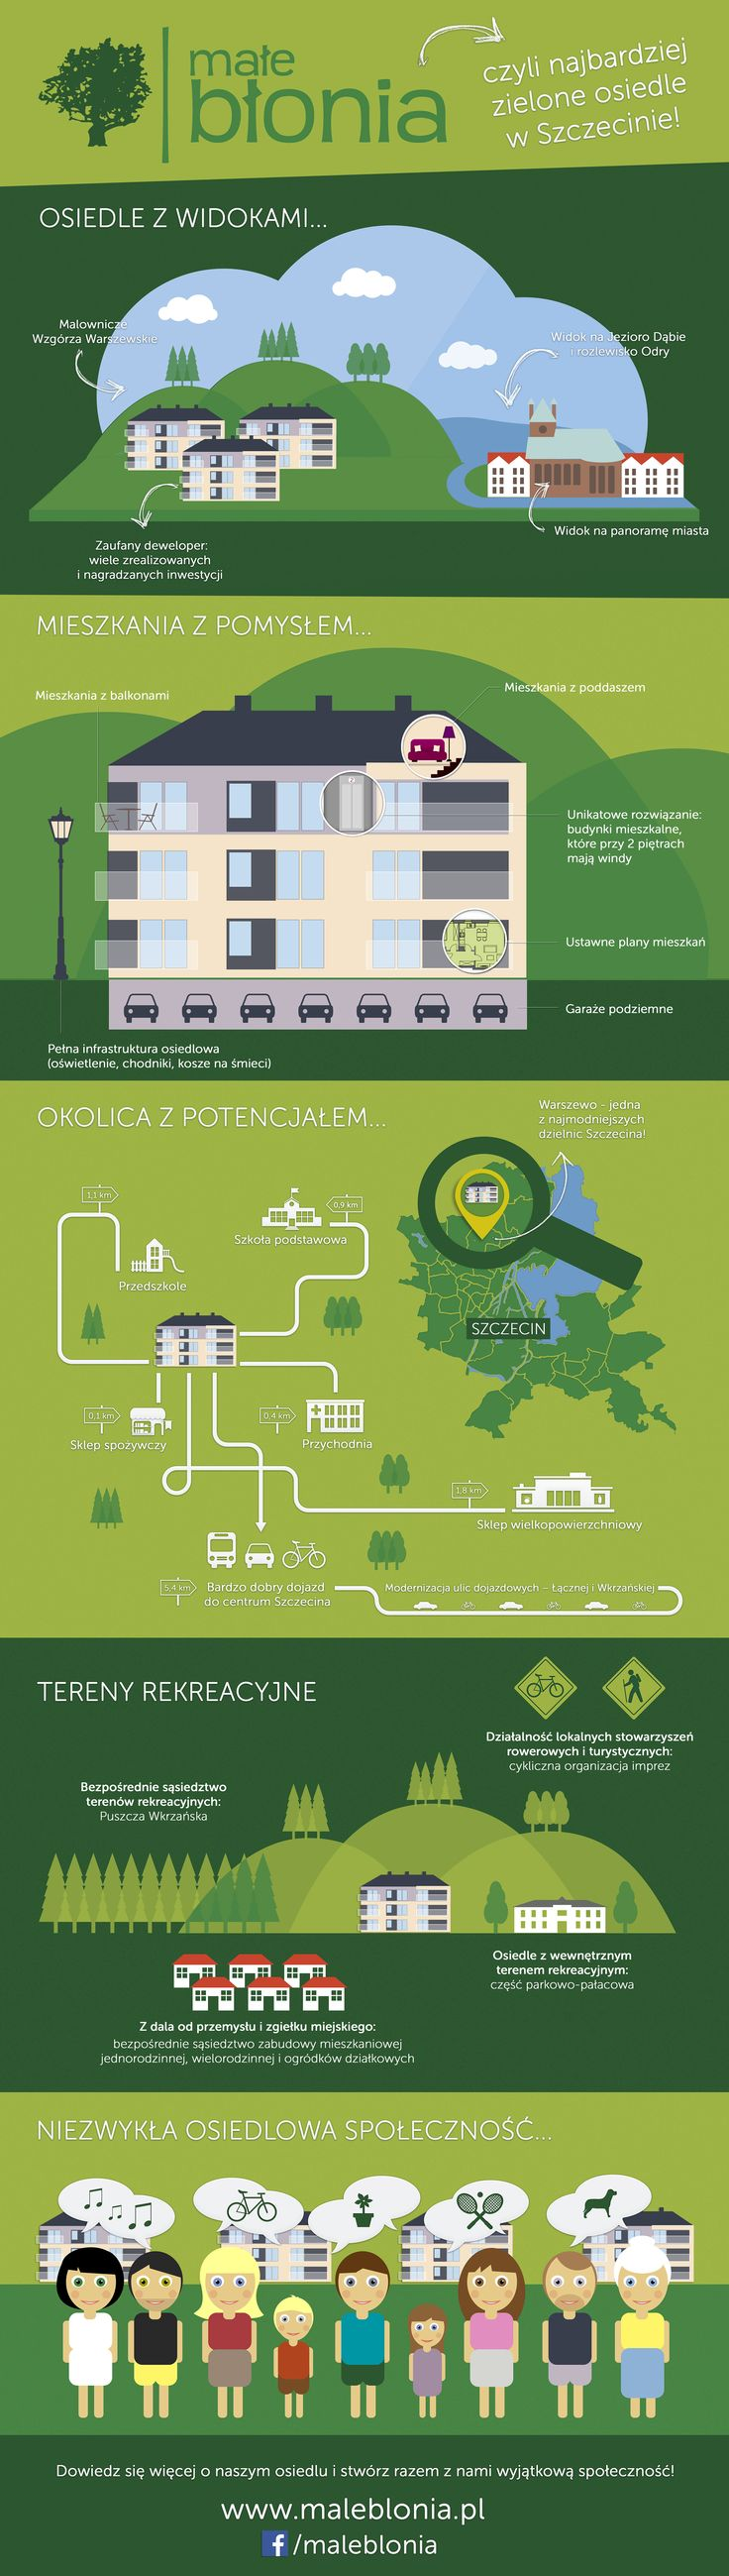 #infographic about #Male_Blonia_Estate